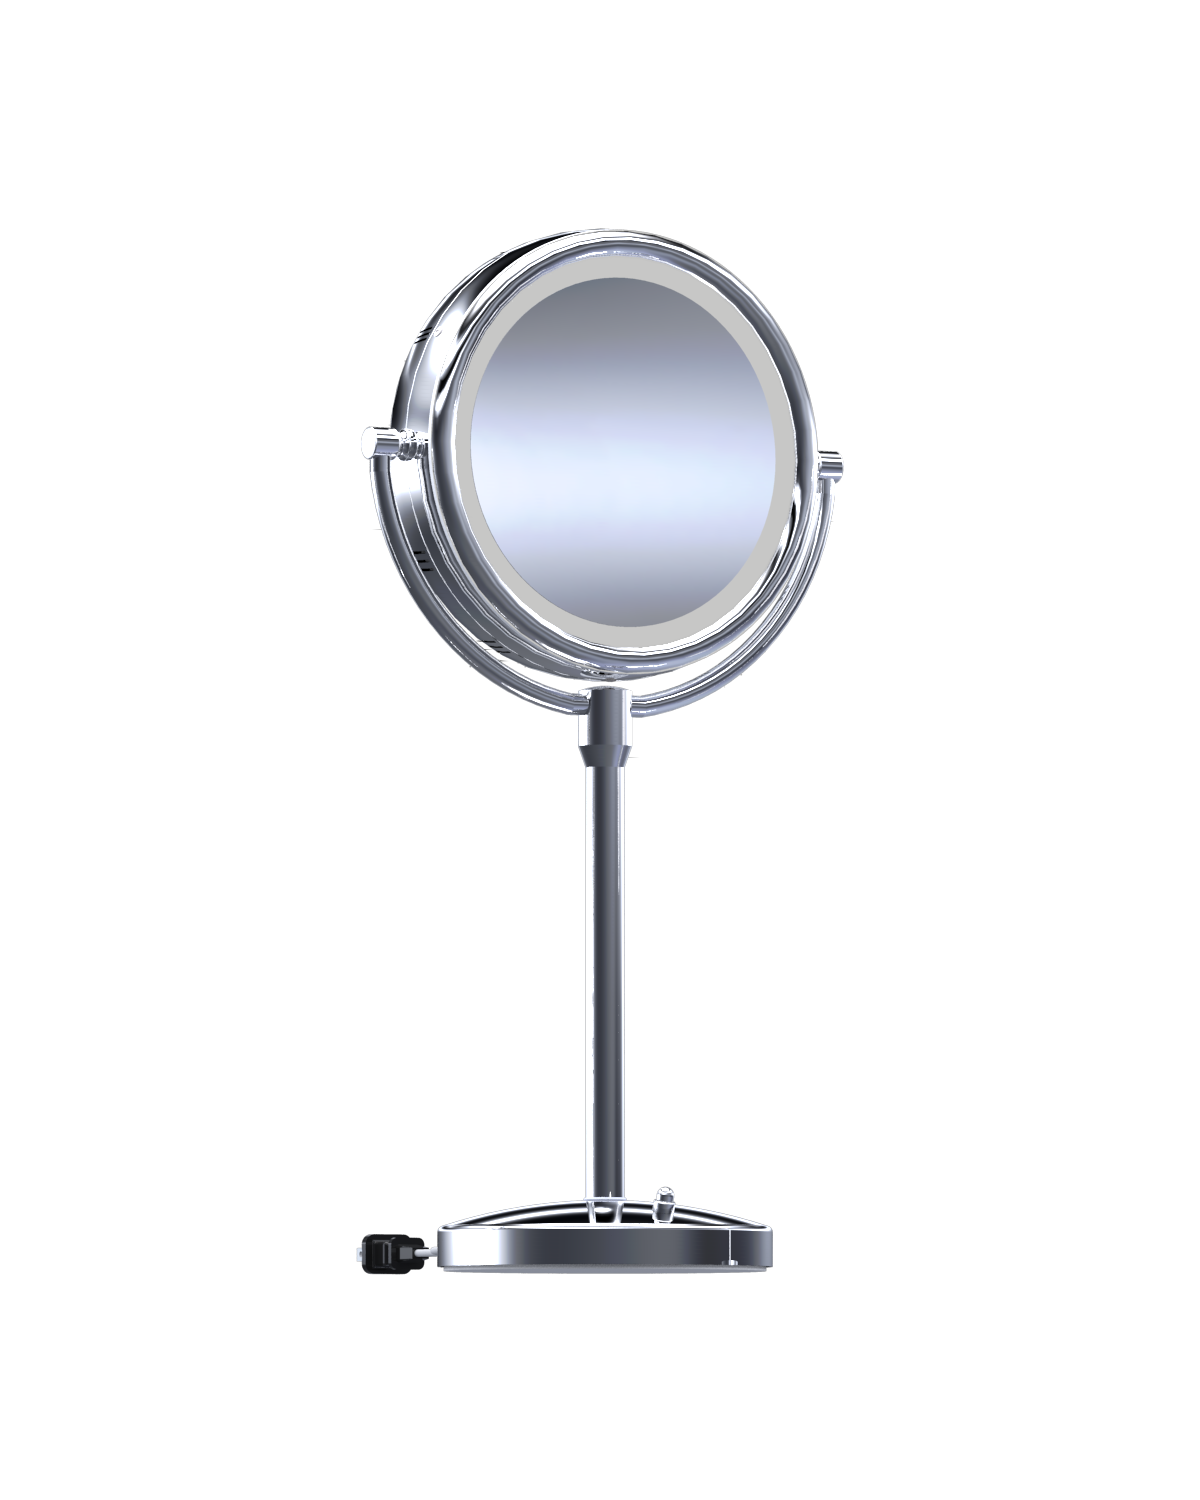 This Practical And Affordable Incandescent Countertop Mirror Features Solid Brass Construction Quality Glass Mirrors Durable Finishes